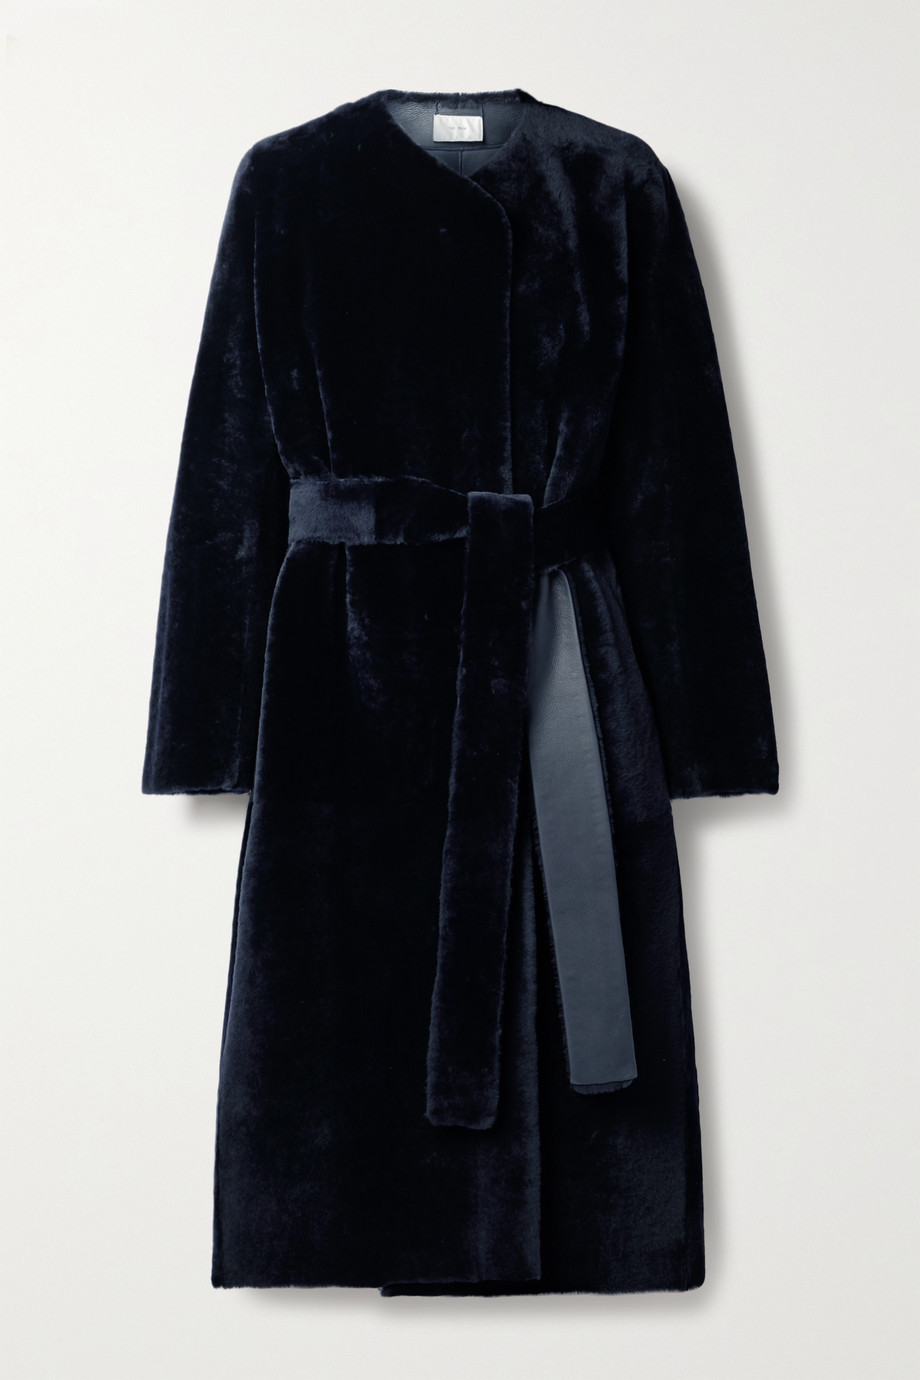 The Row Ferin belted shearling coat